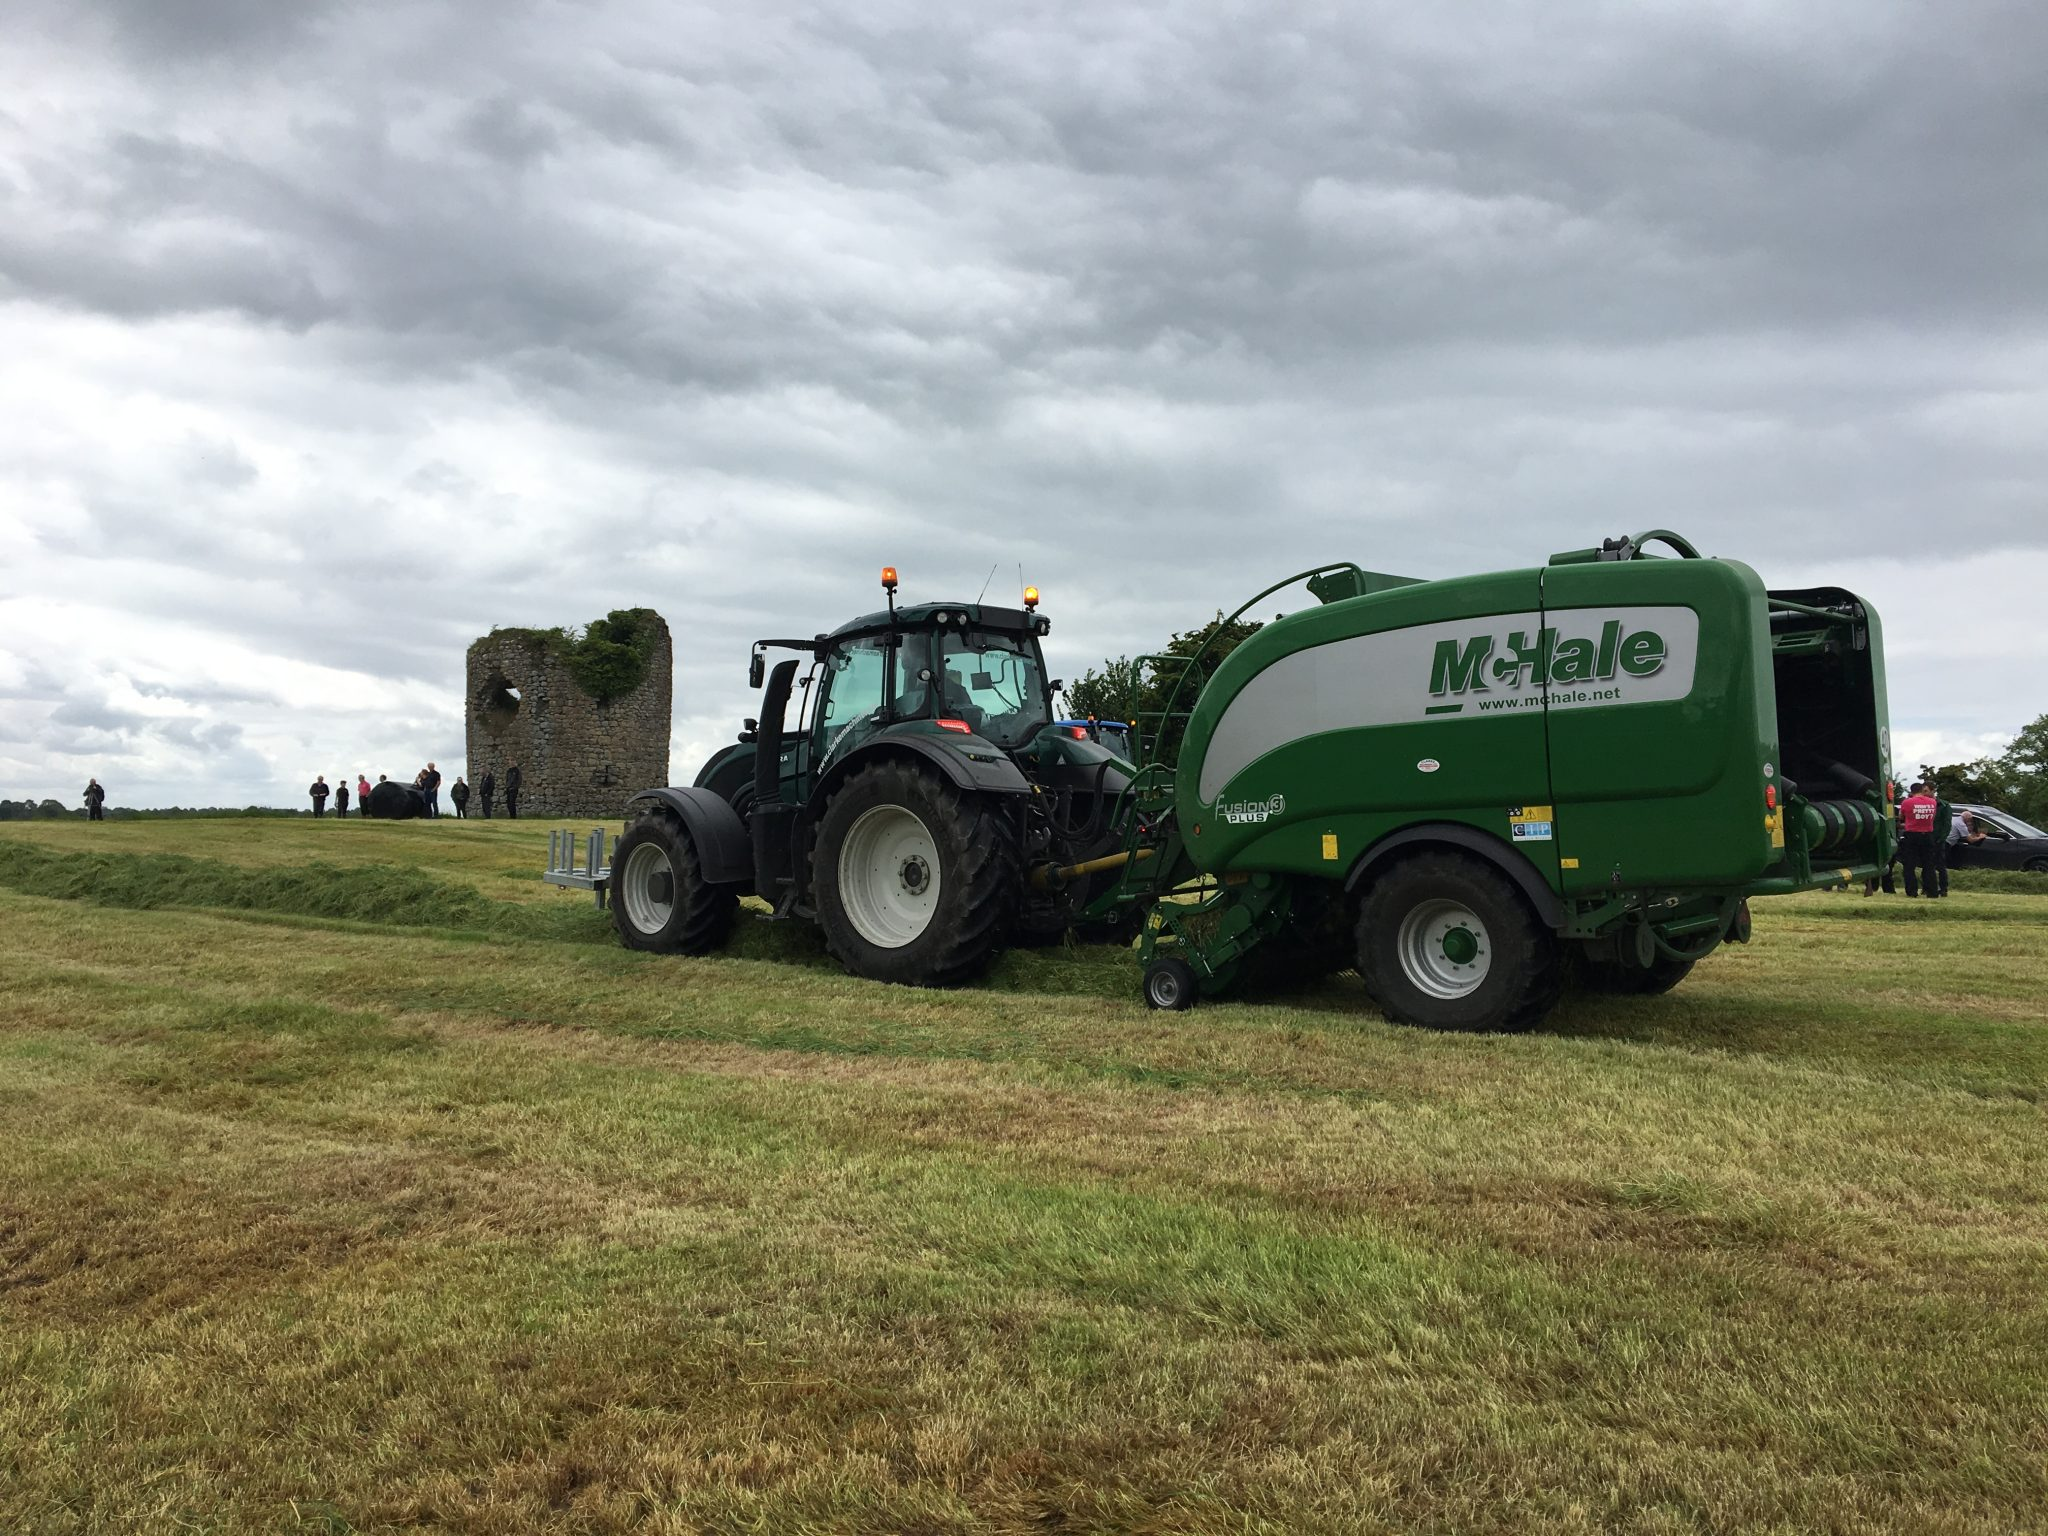 McHale Fusion 3 Plus at work on the 32 County Bale Challenge